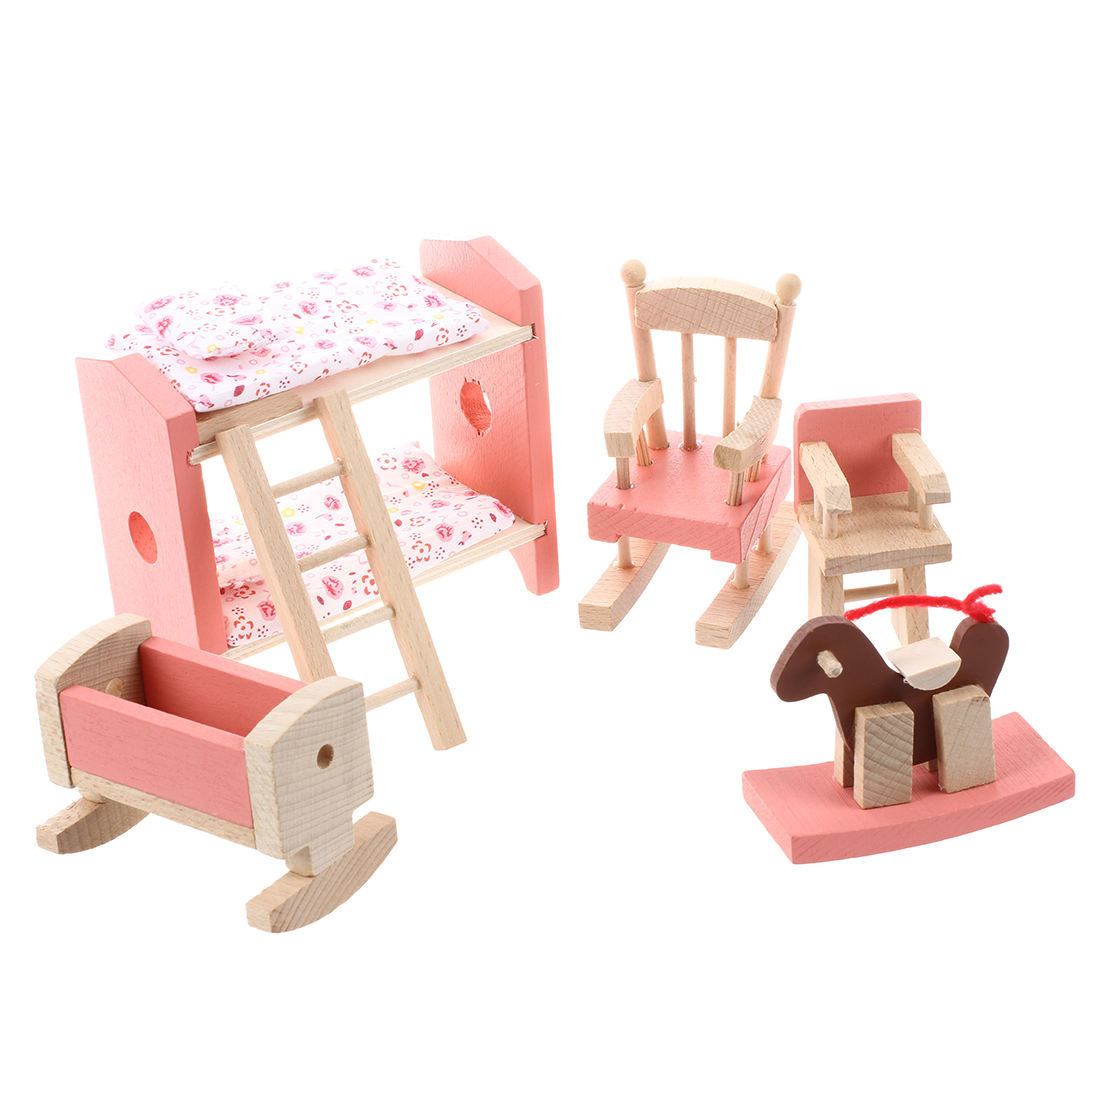 New Wood Furniture Room Set for Doll's House Children toy